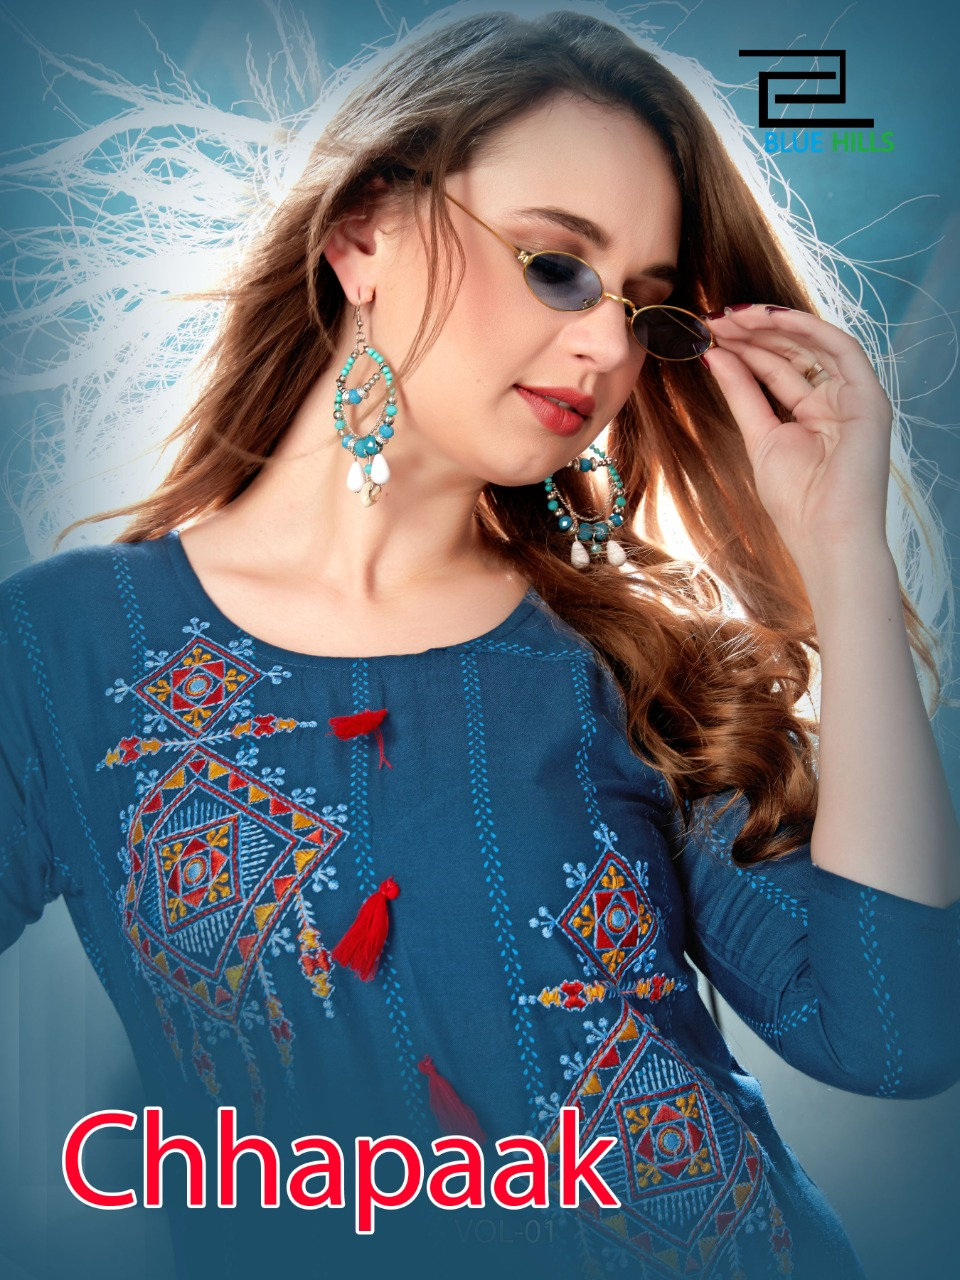 Blue Hills Chhapak Designer Rayon  Print With Handwork Suits In Best Wholesale Rate